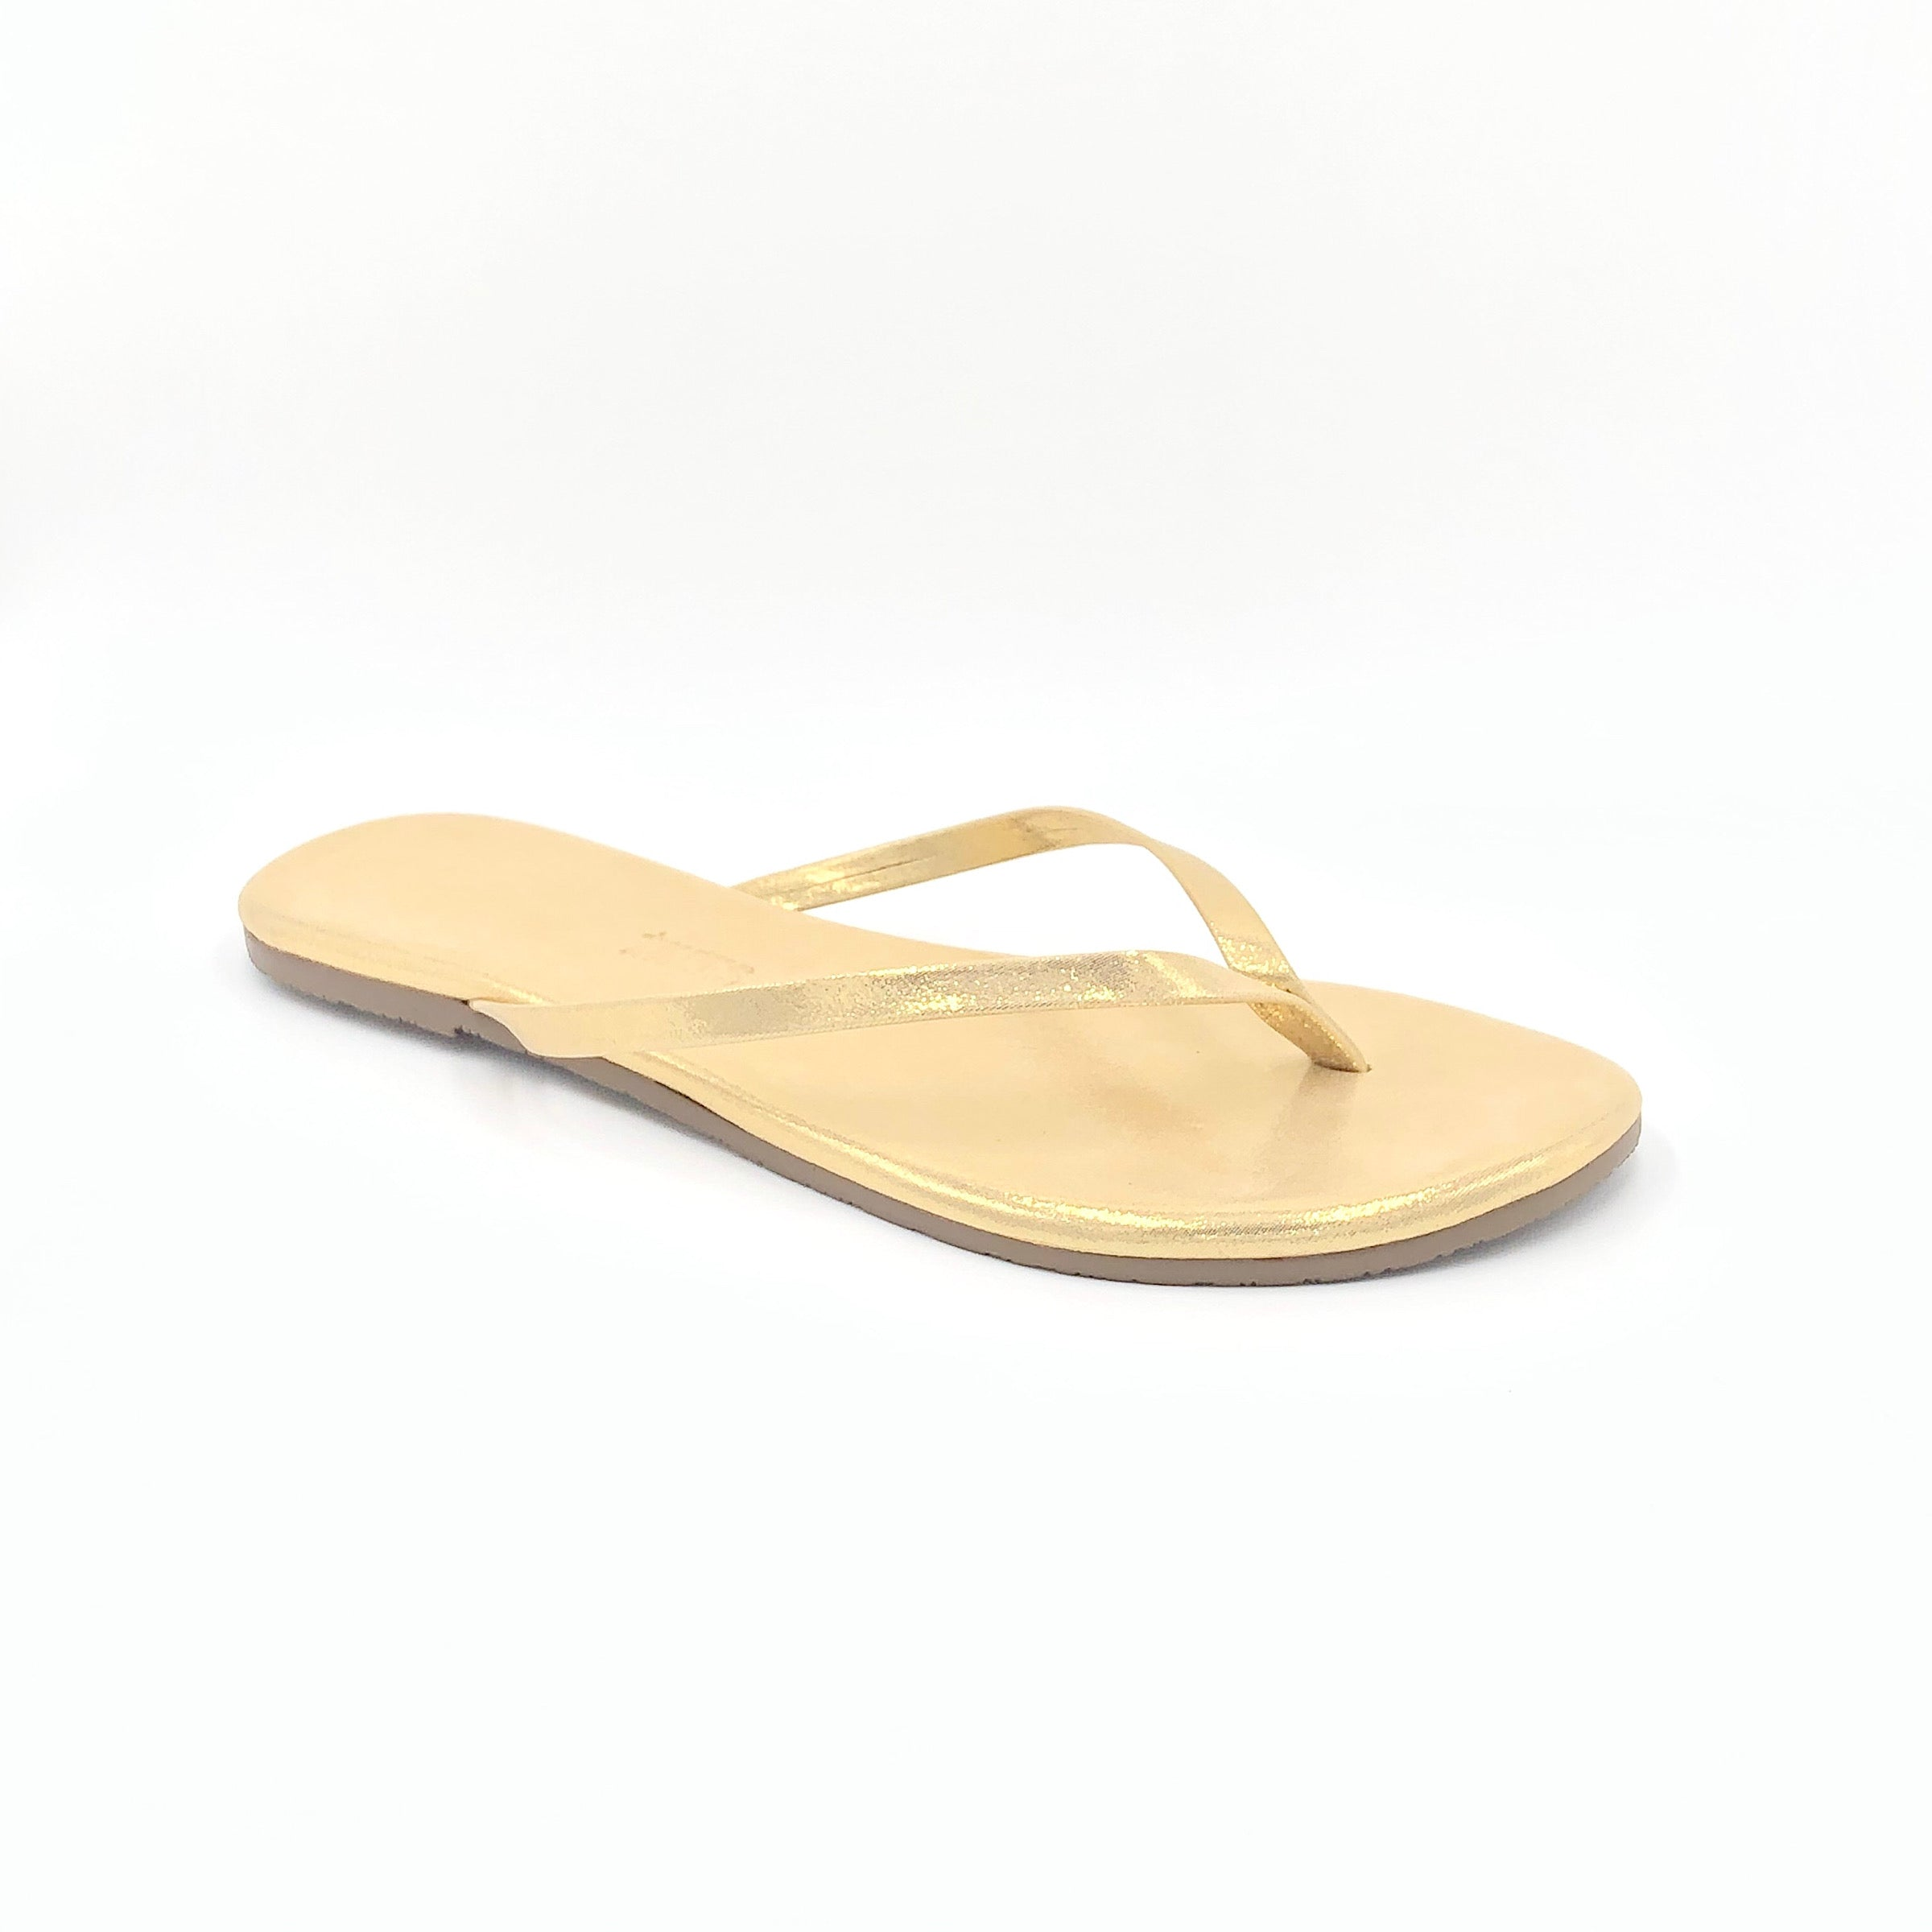 Glitters - The Flip Flop With A Hint of Shine in Sandbeam